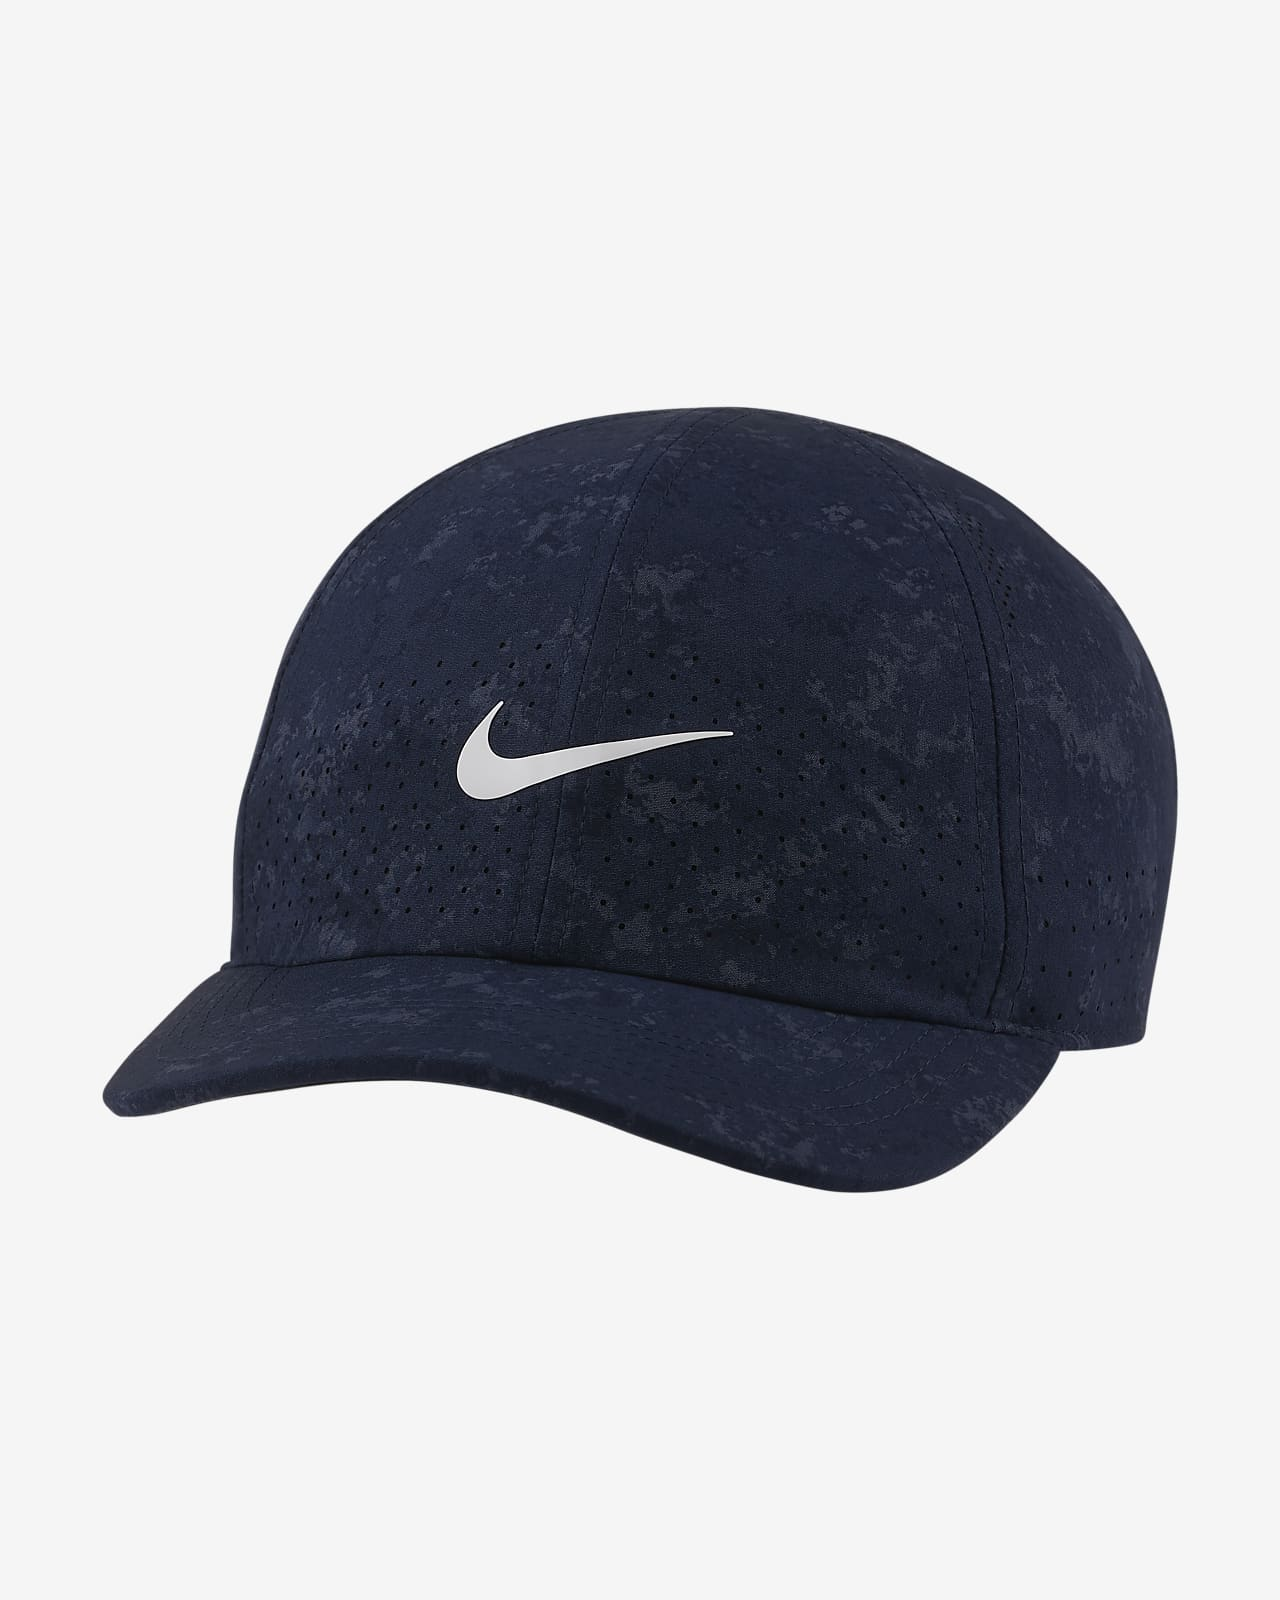 NikeCourt Advantage Tennis Cap